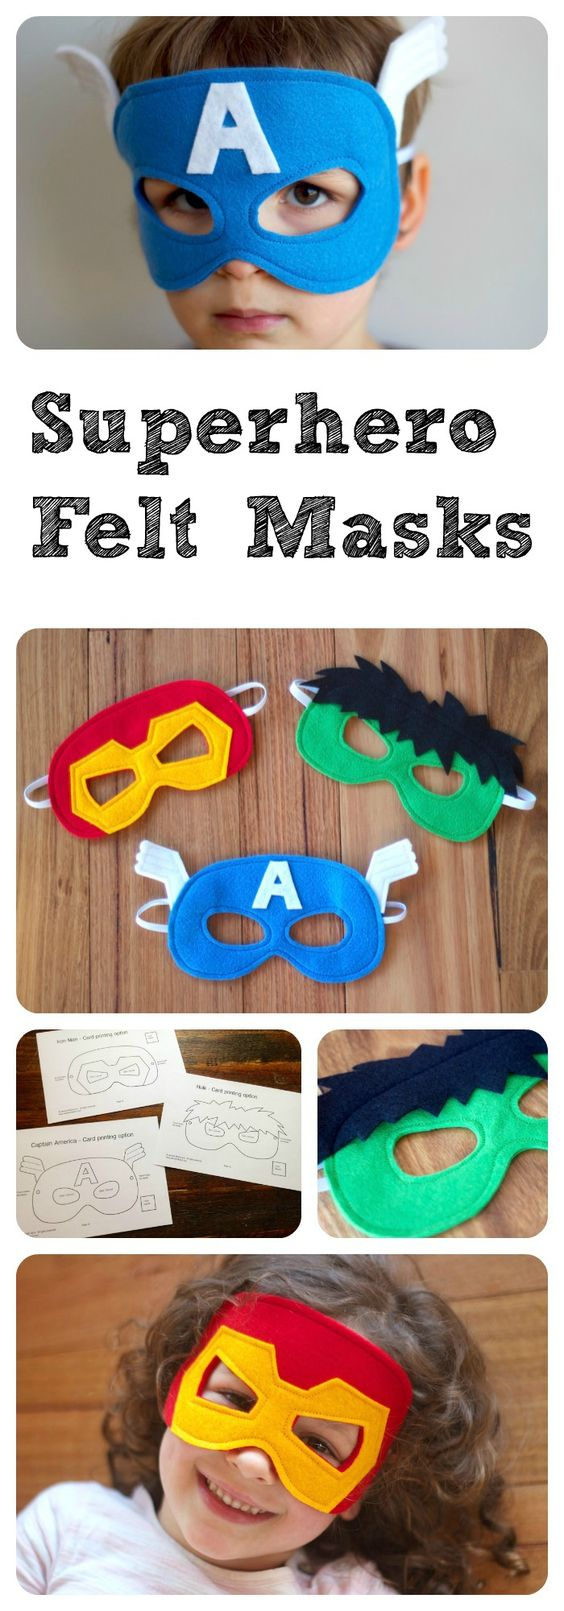 Superhero Mask PDF Patterns.